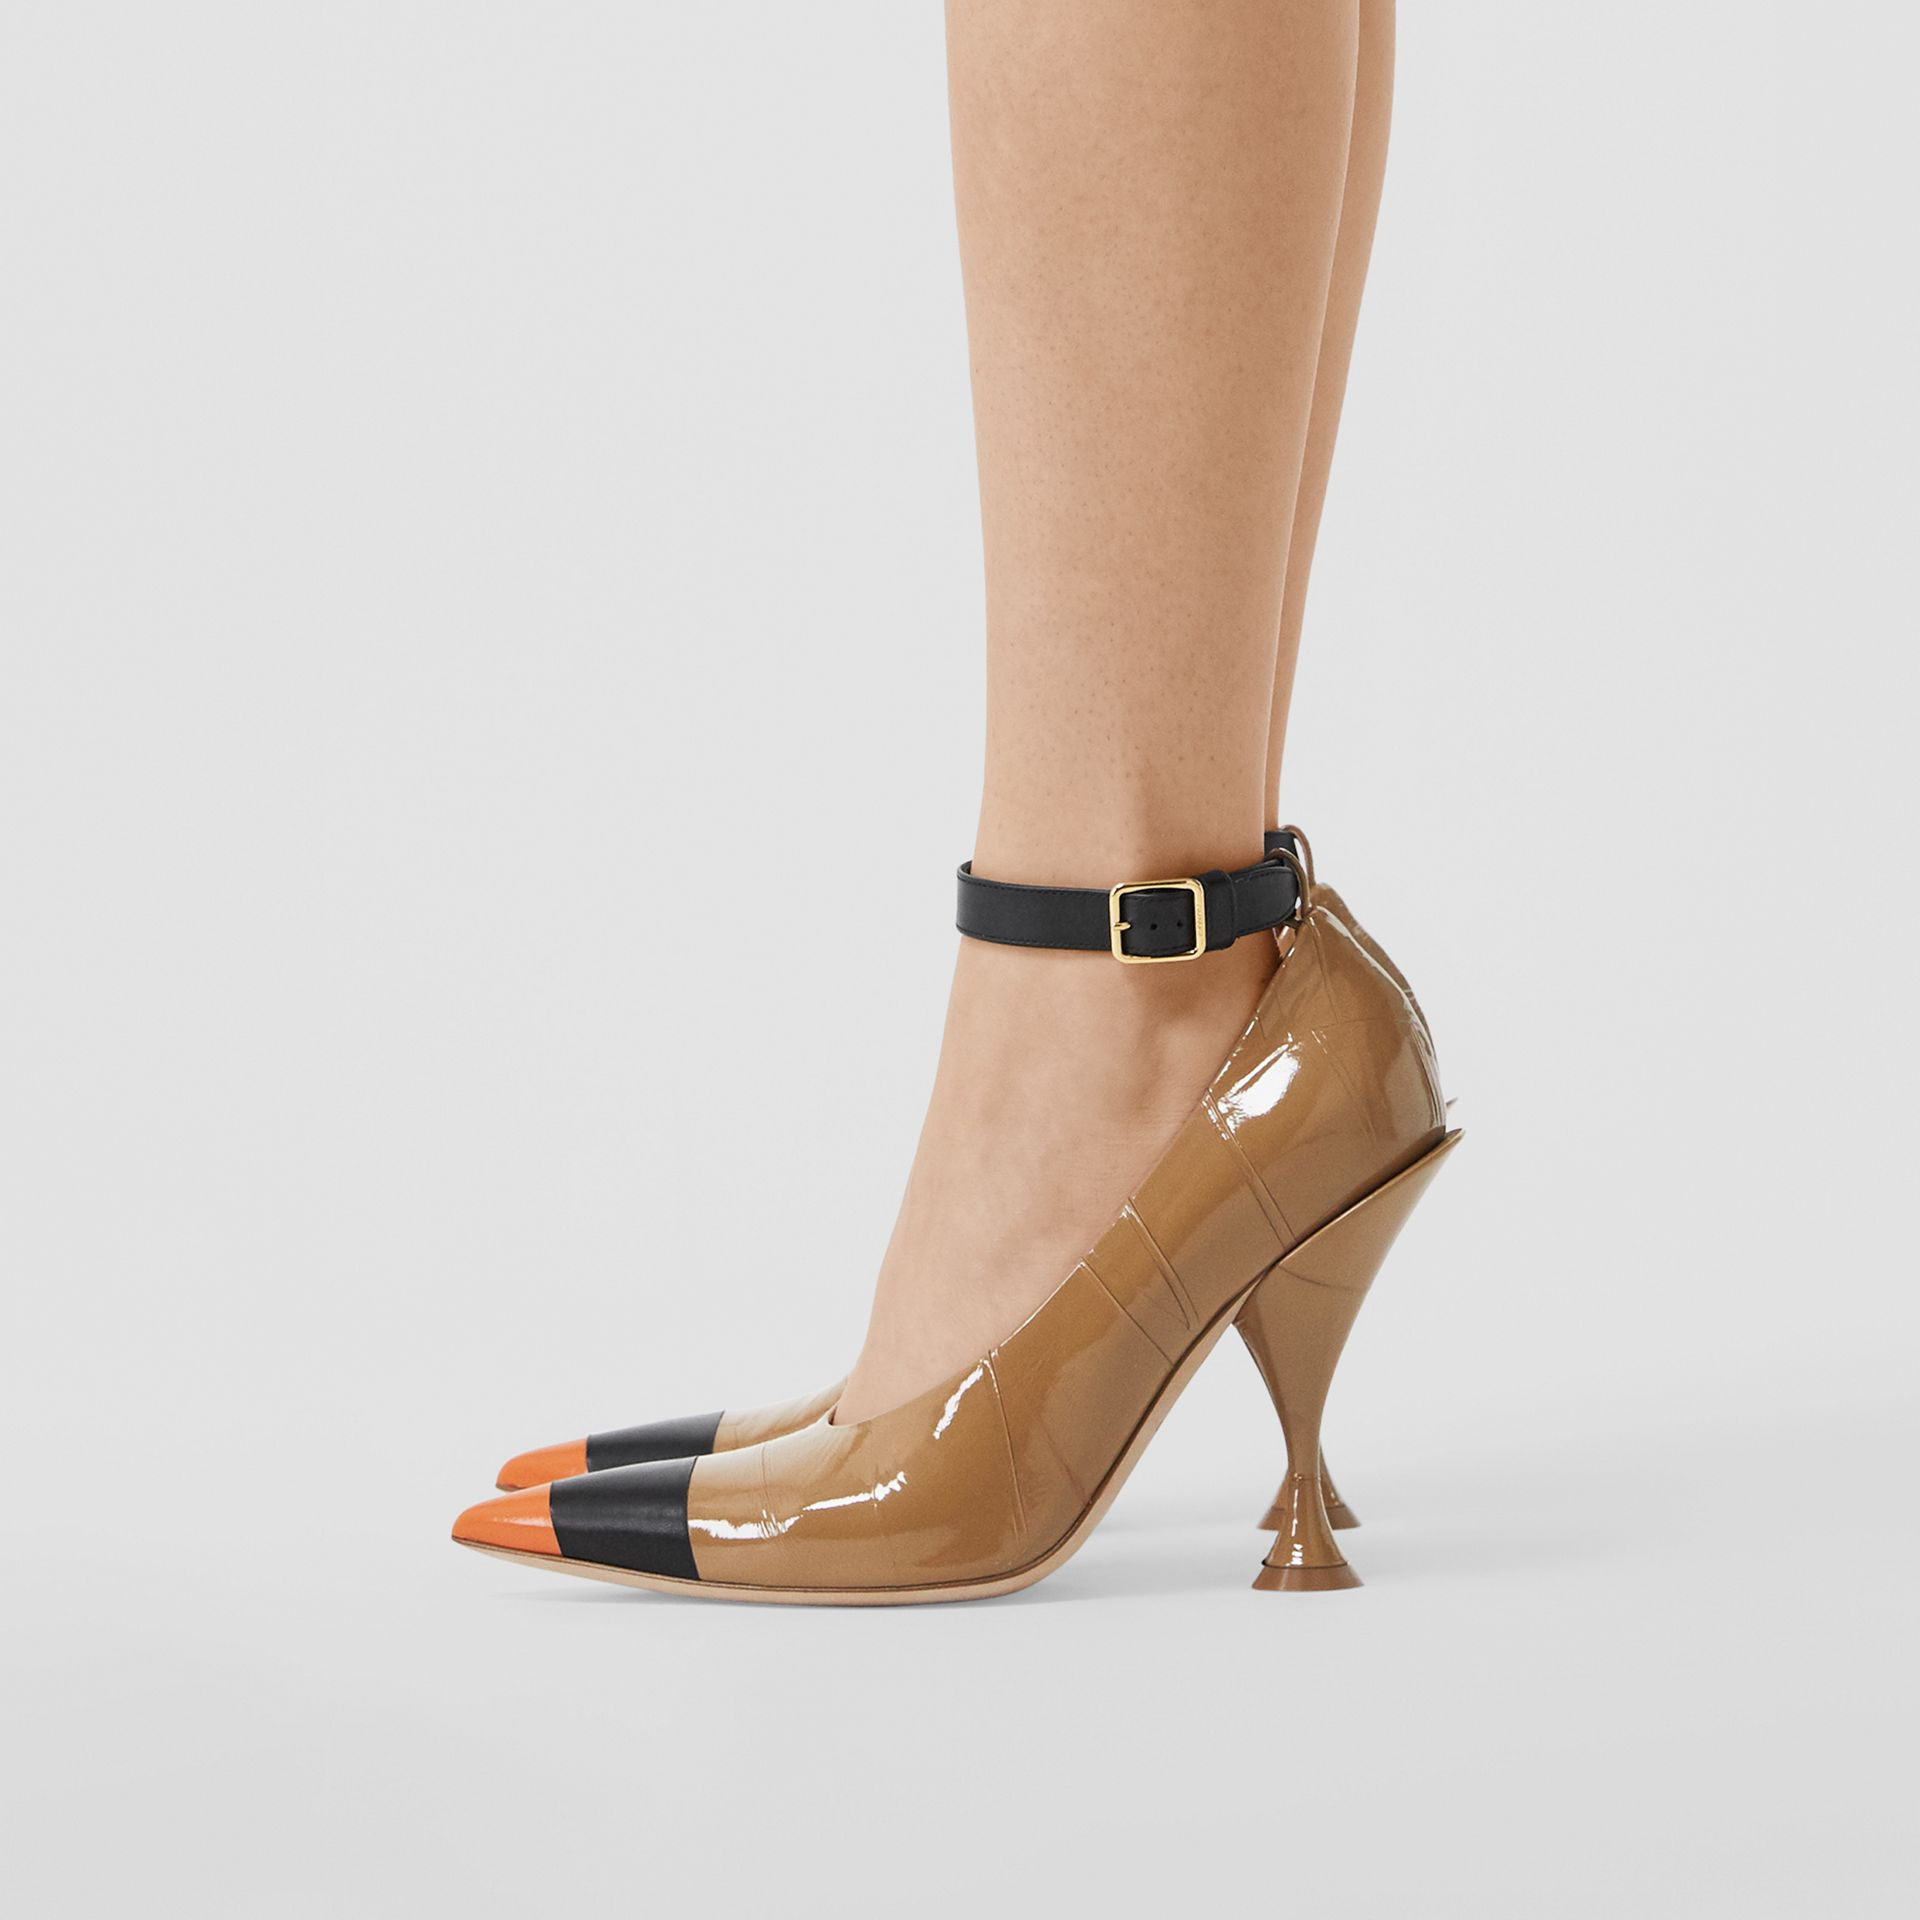 Tape Detail Leather Point-toe Pumps in Brown / Black - Women | Burberry - gallery image 2